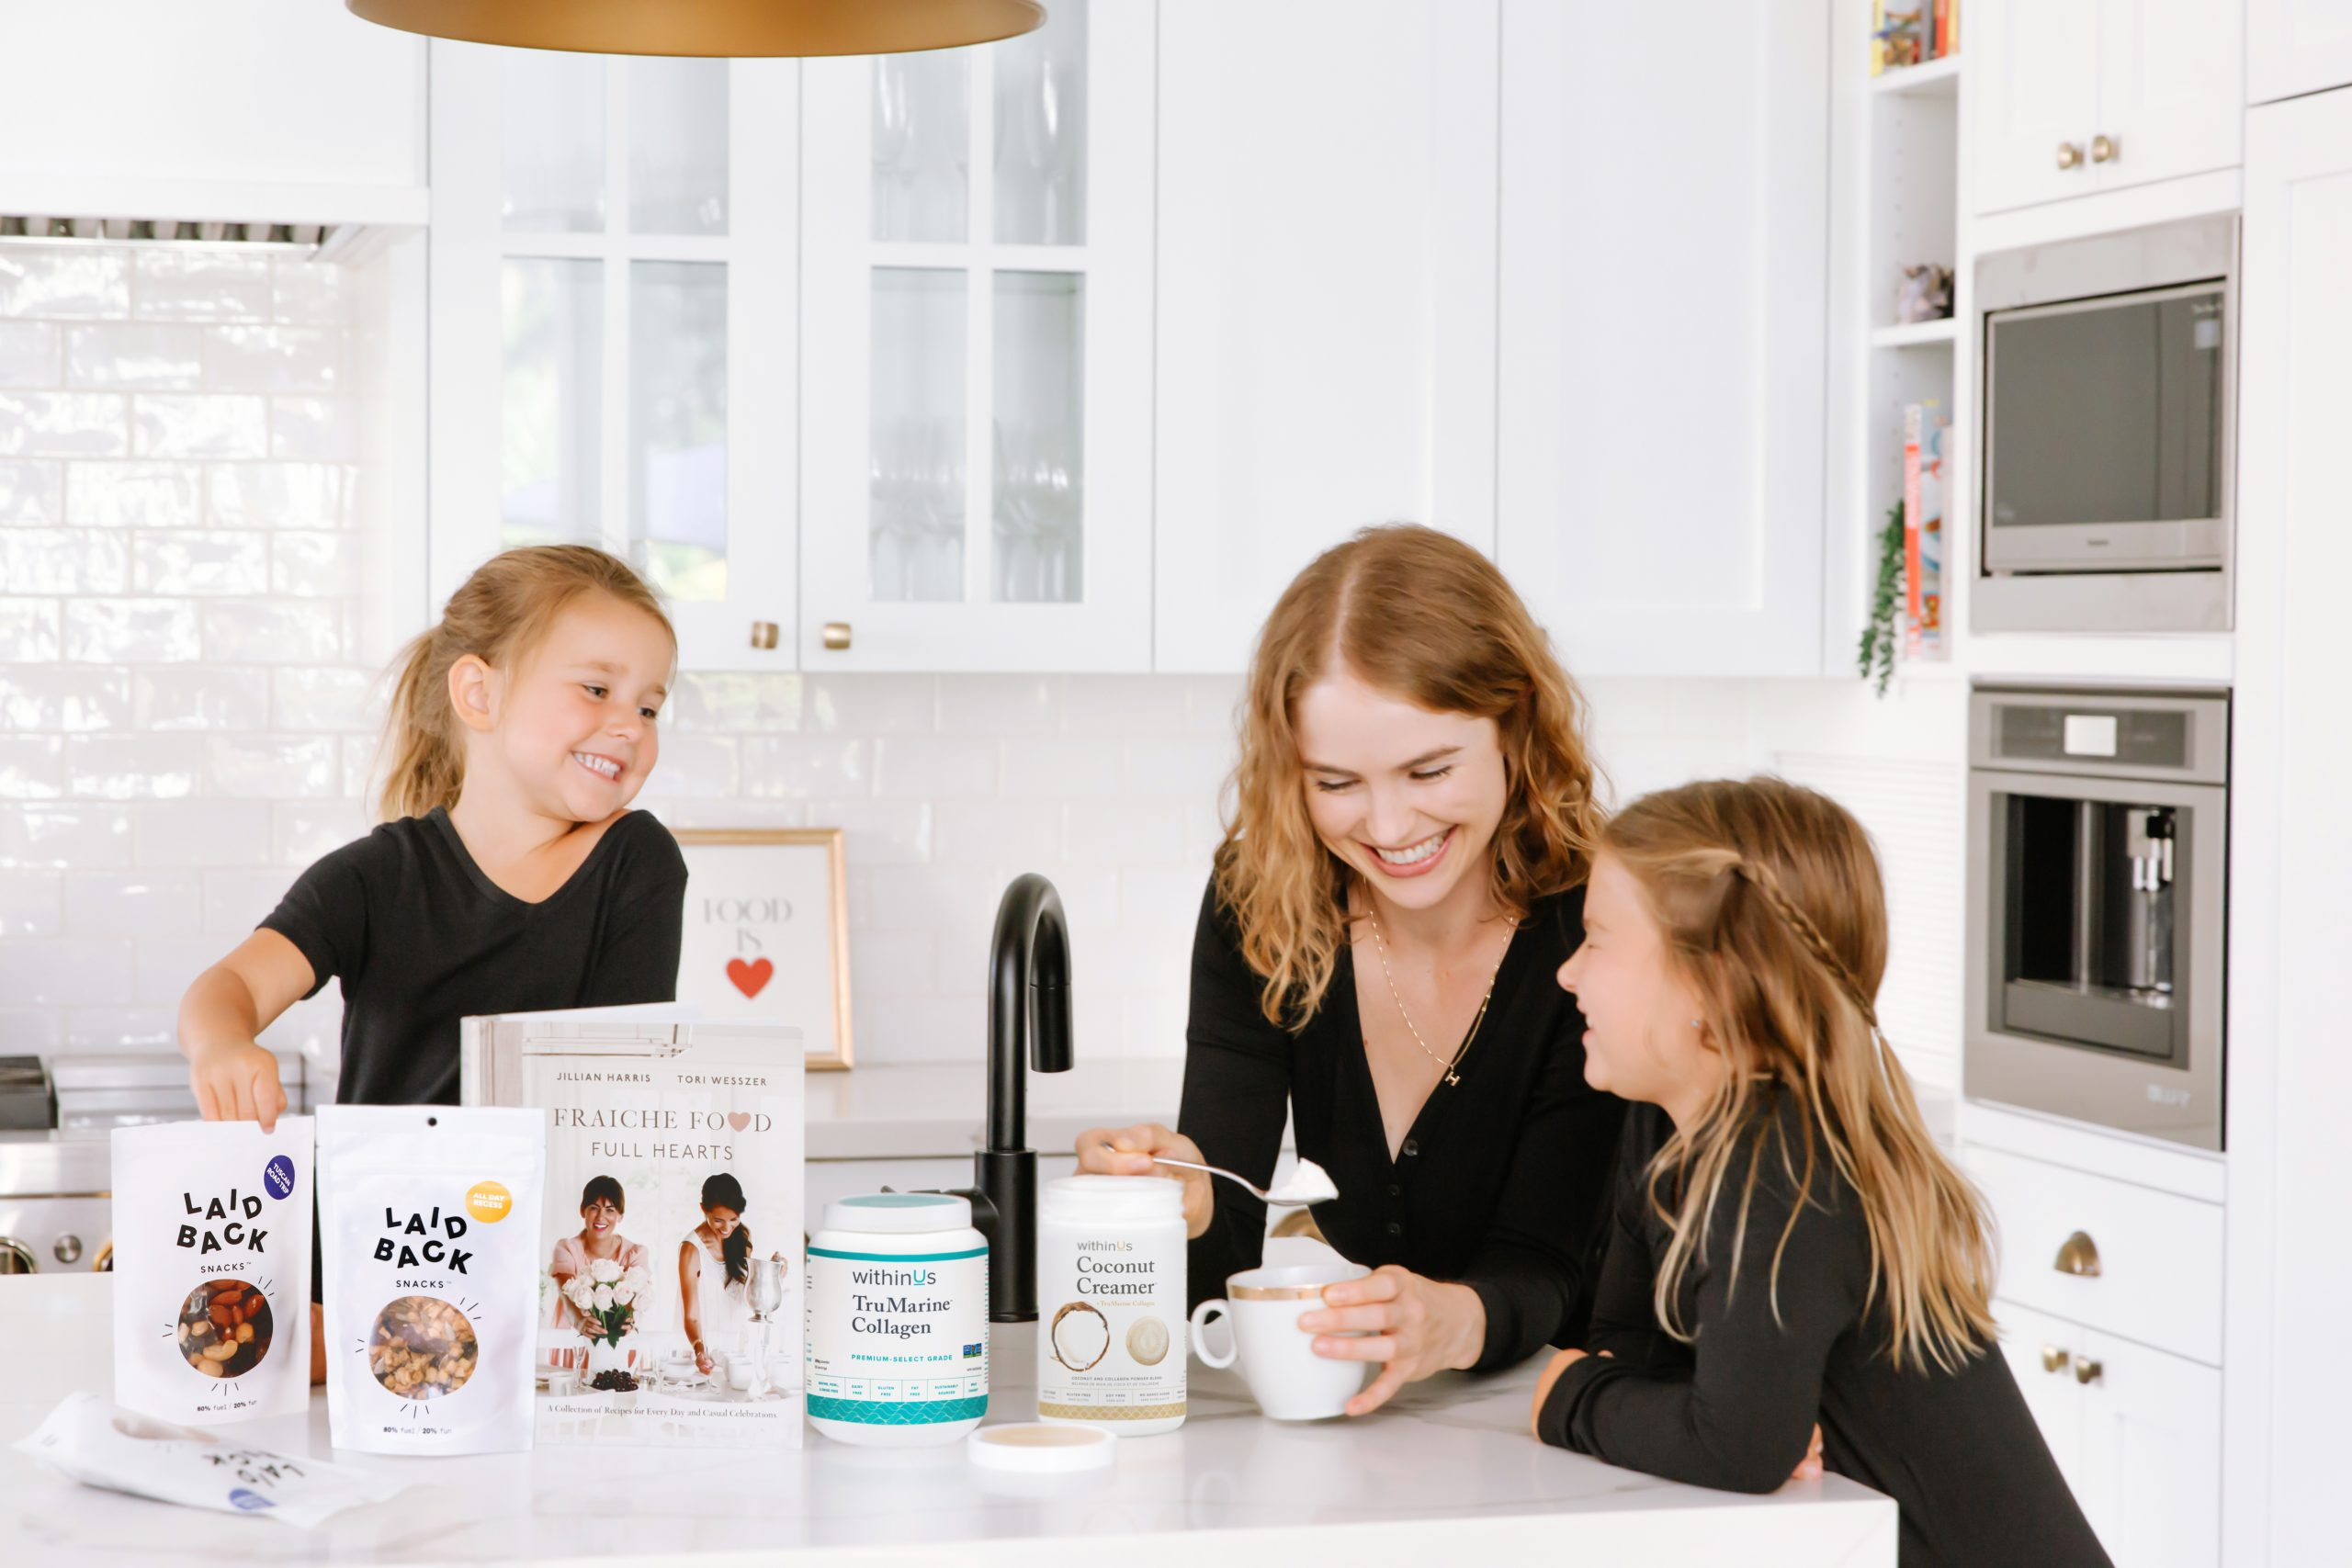 laid back snacks is fundraising for Mamas for Mamas